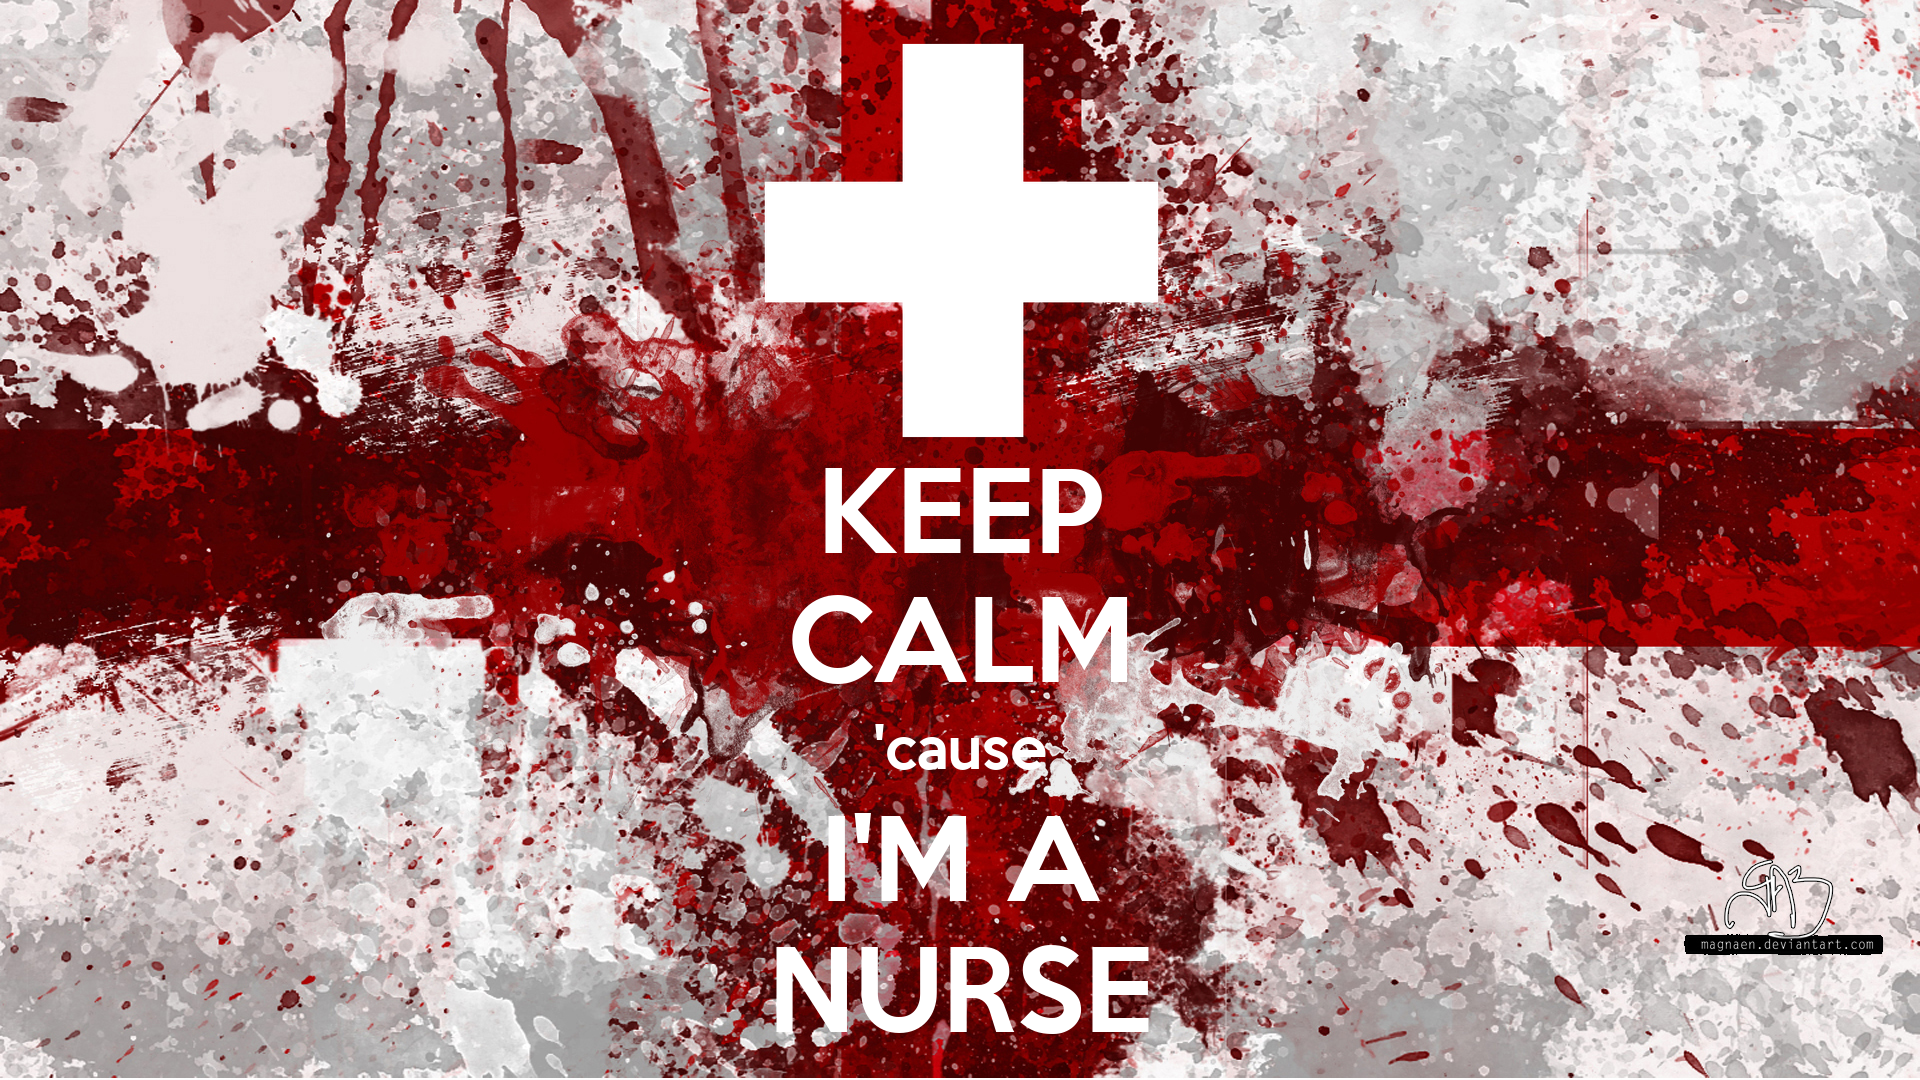 Registered Nurse Wallpaper Widescreen wallpaperNursing Wallpaper